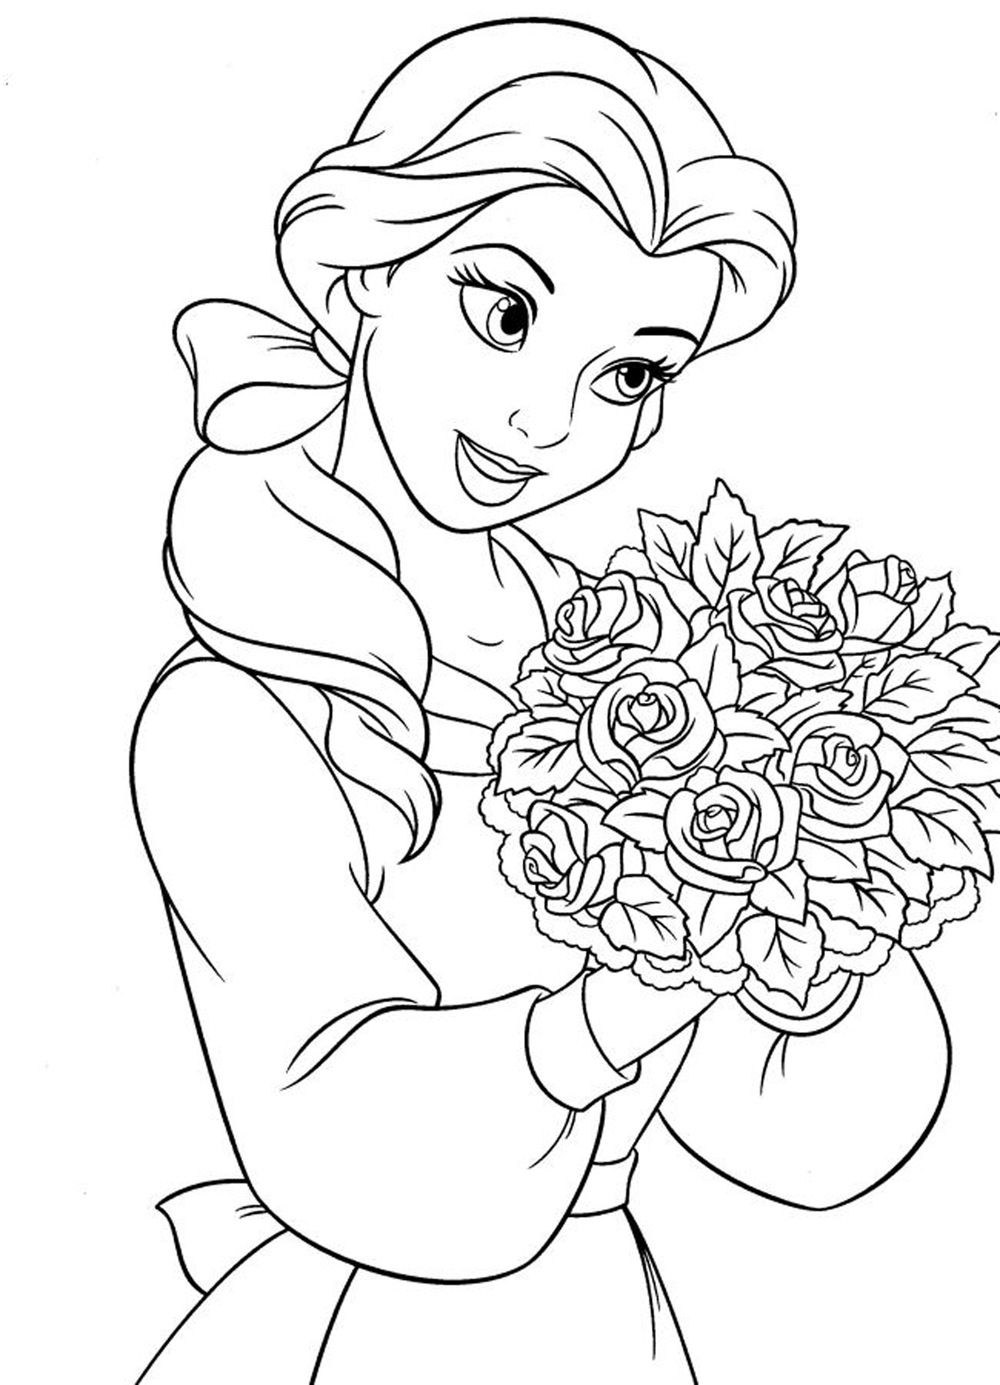 picture of a girl to color detailed coloring pages for girls at getcoloringscom girl picture of a color to